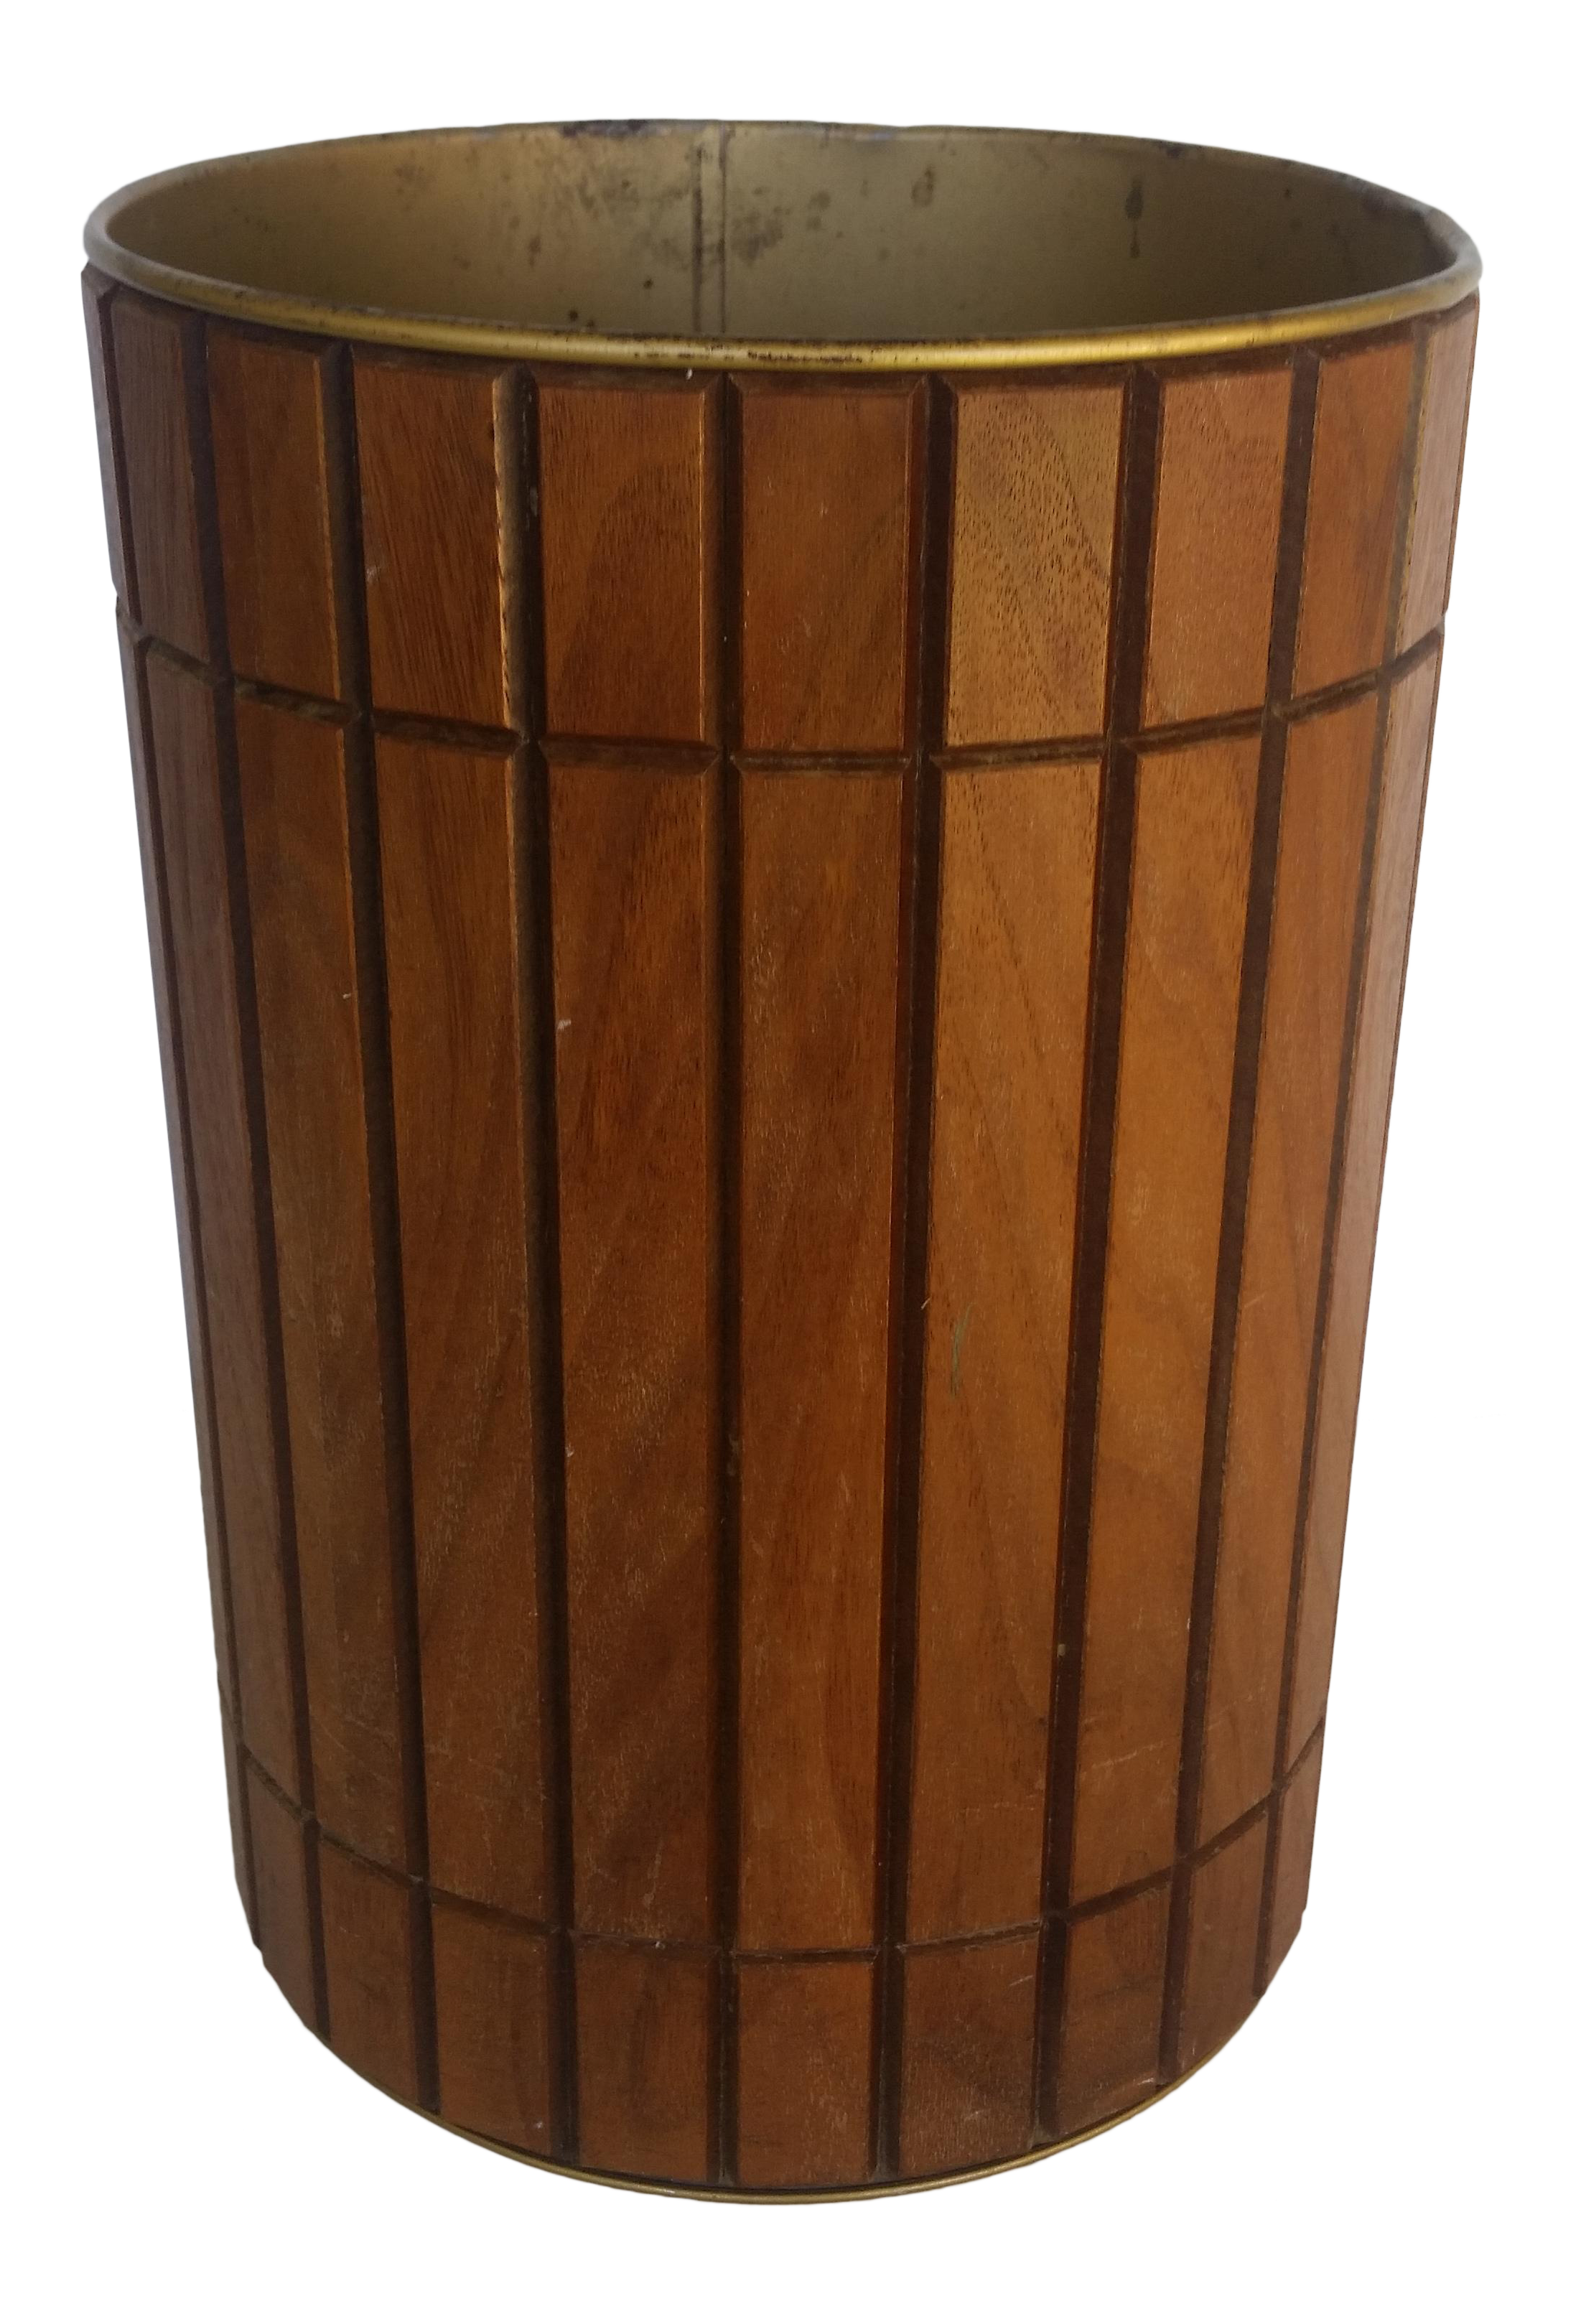 Vintage Gruvwood Trash Can Waste Basket Downstairs